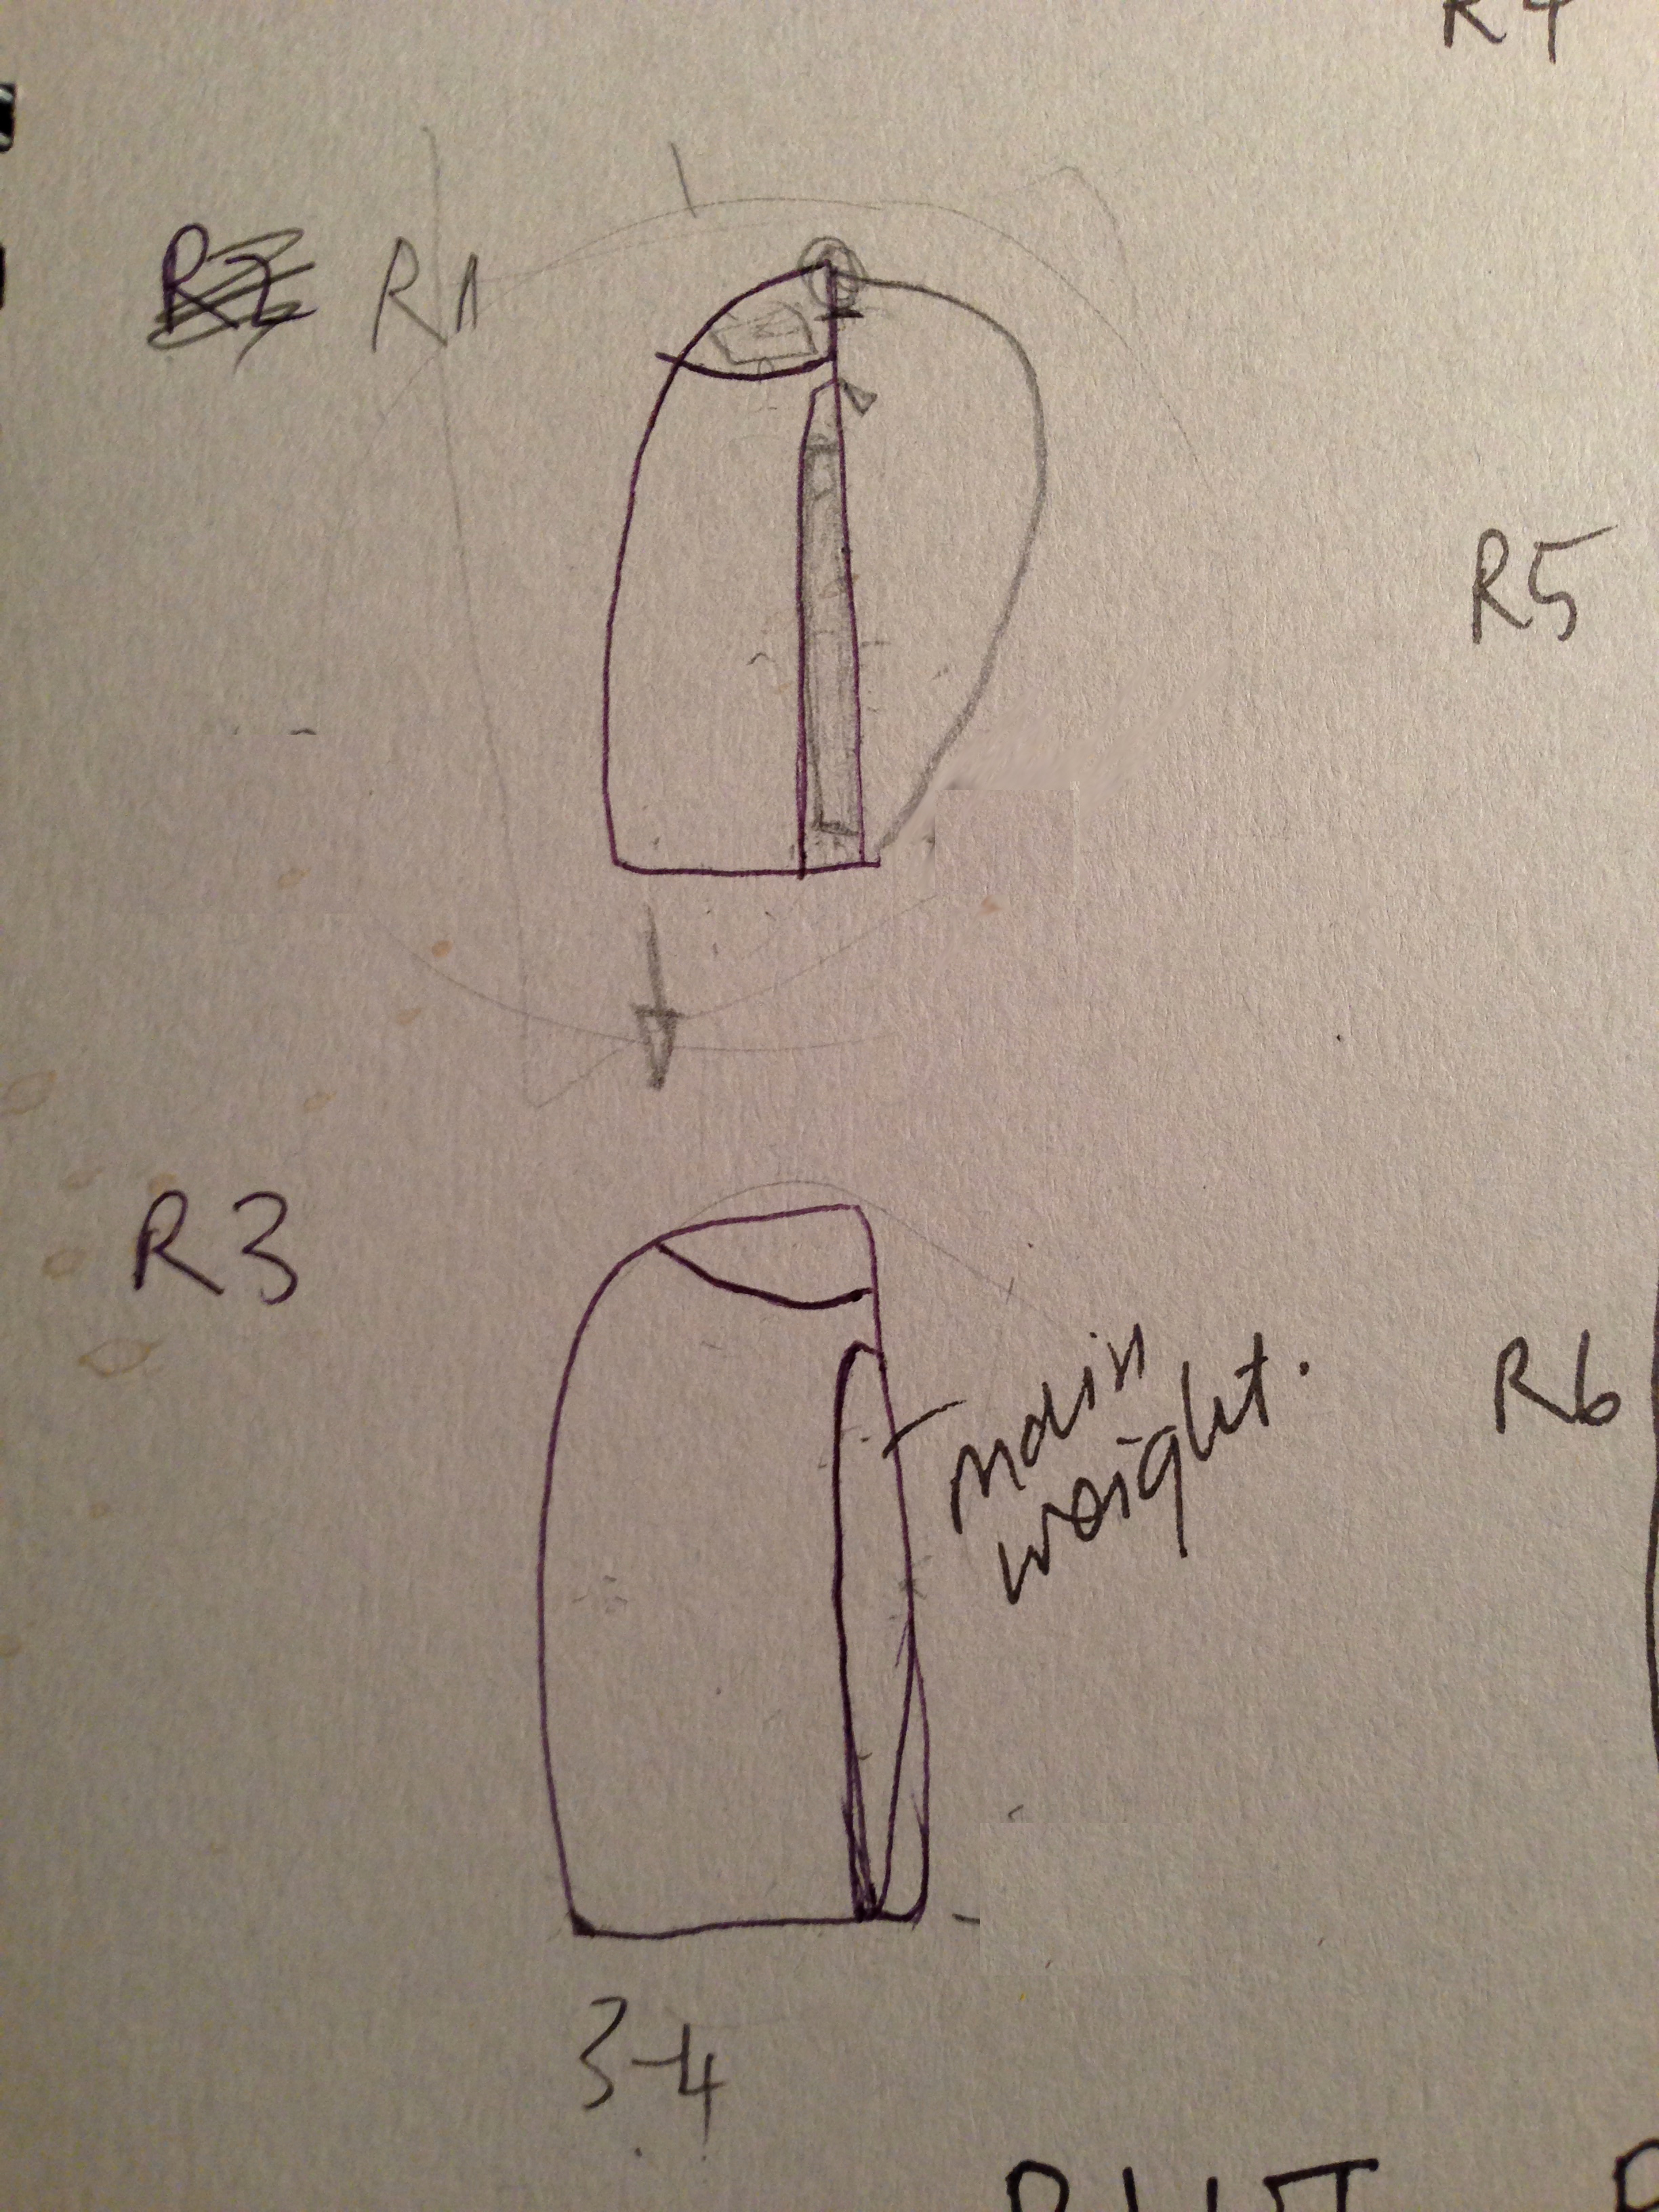 RiutBag early sketches c. 2012